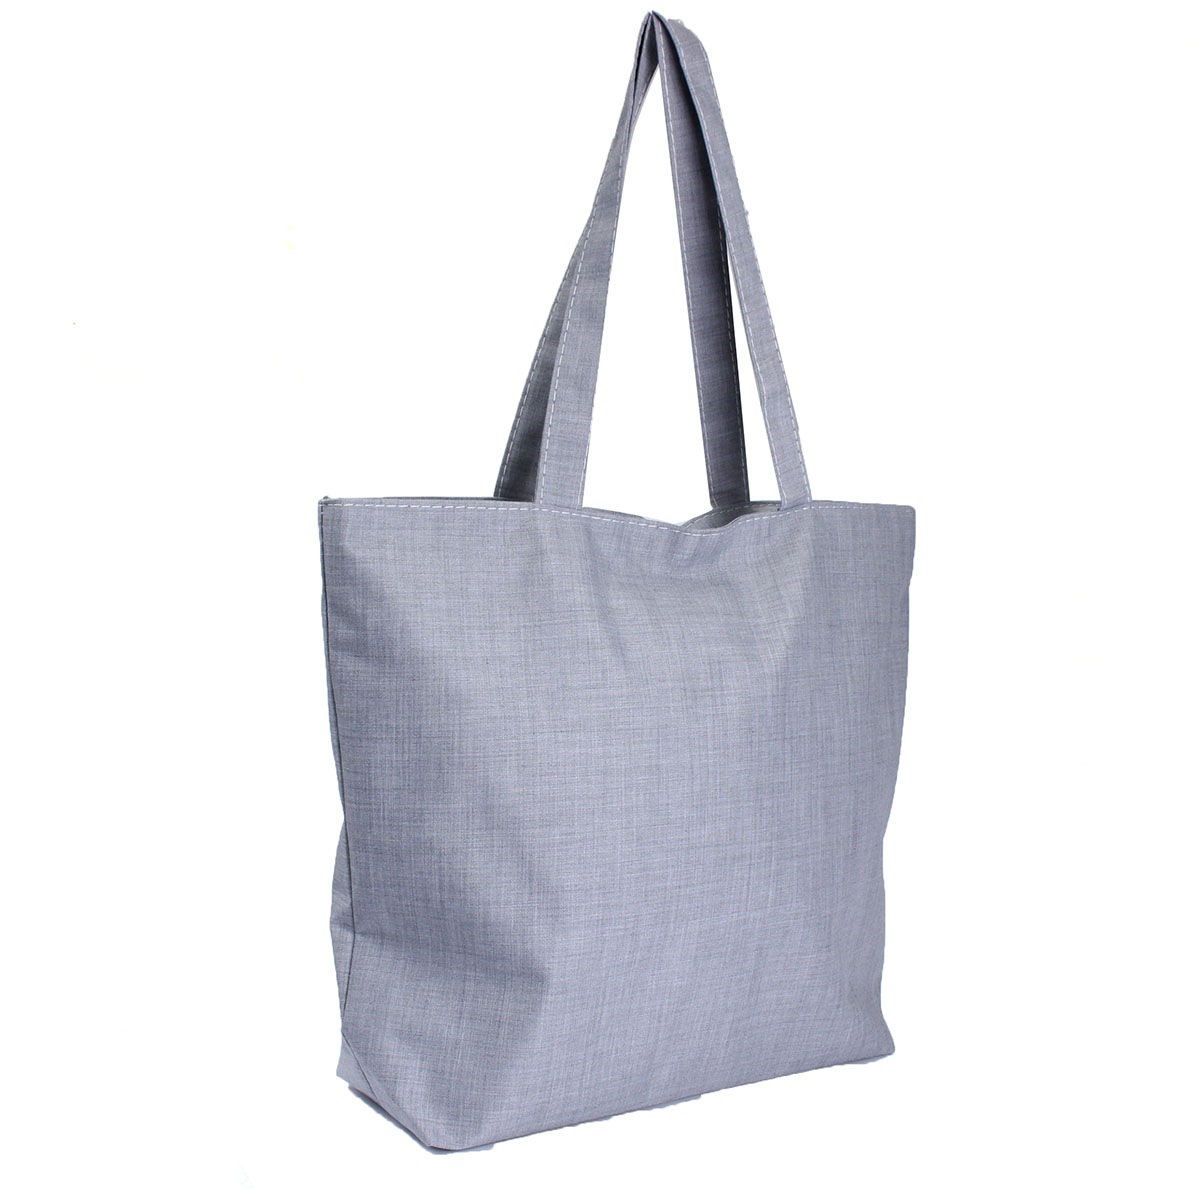 Compare Prices on Diy Canvas Bags- Online Shopping/Buy Low Price ...